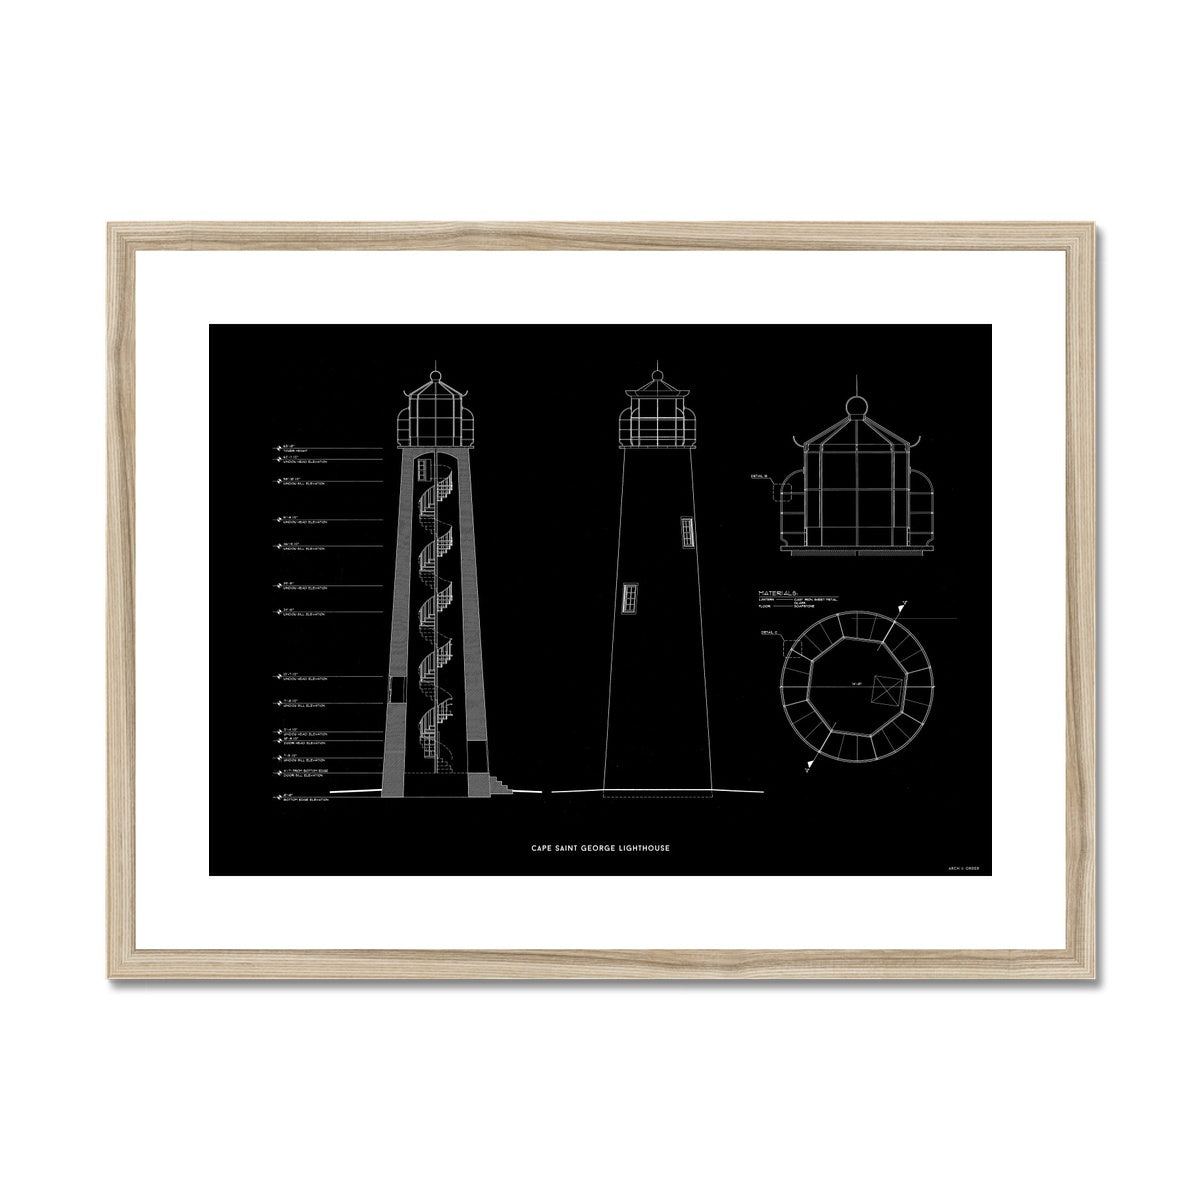 Cape Saint George Lighthouse - Southeast Elevation and Cross Section - Black - Framed Mounted Print